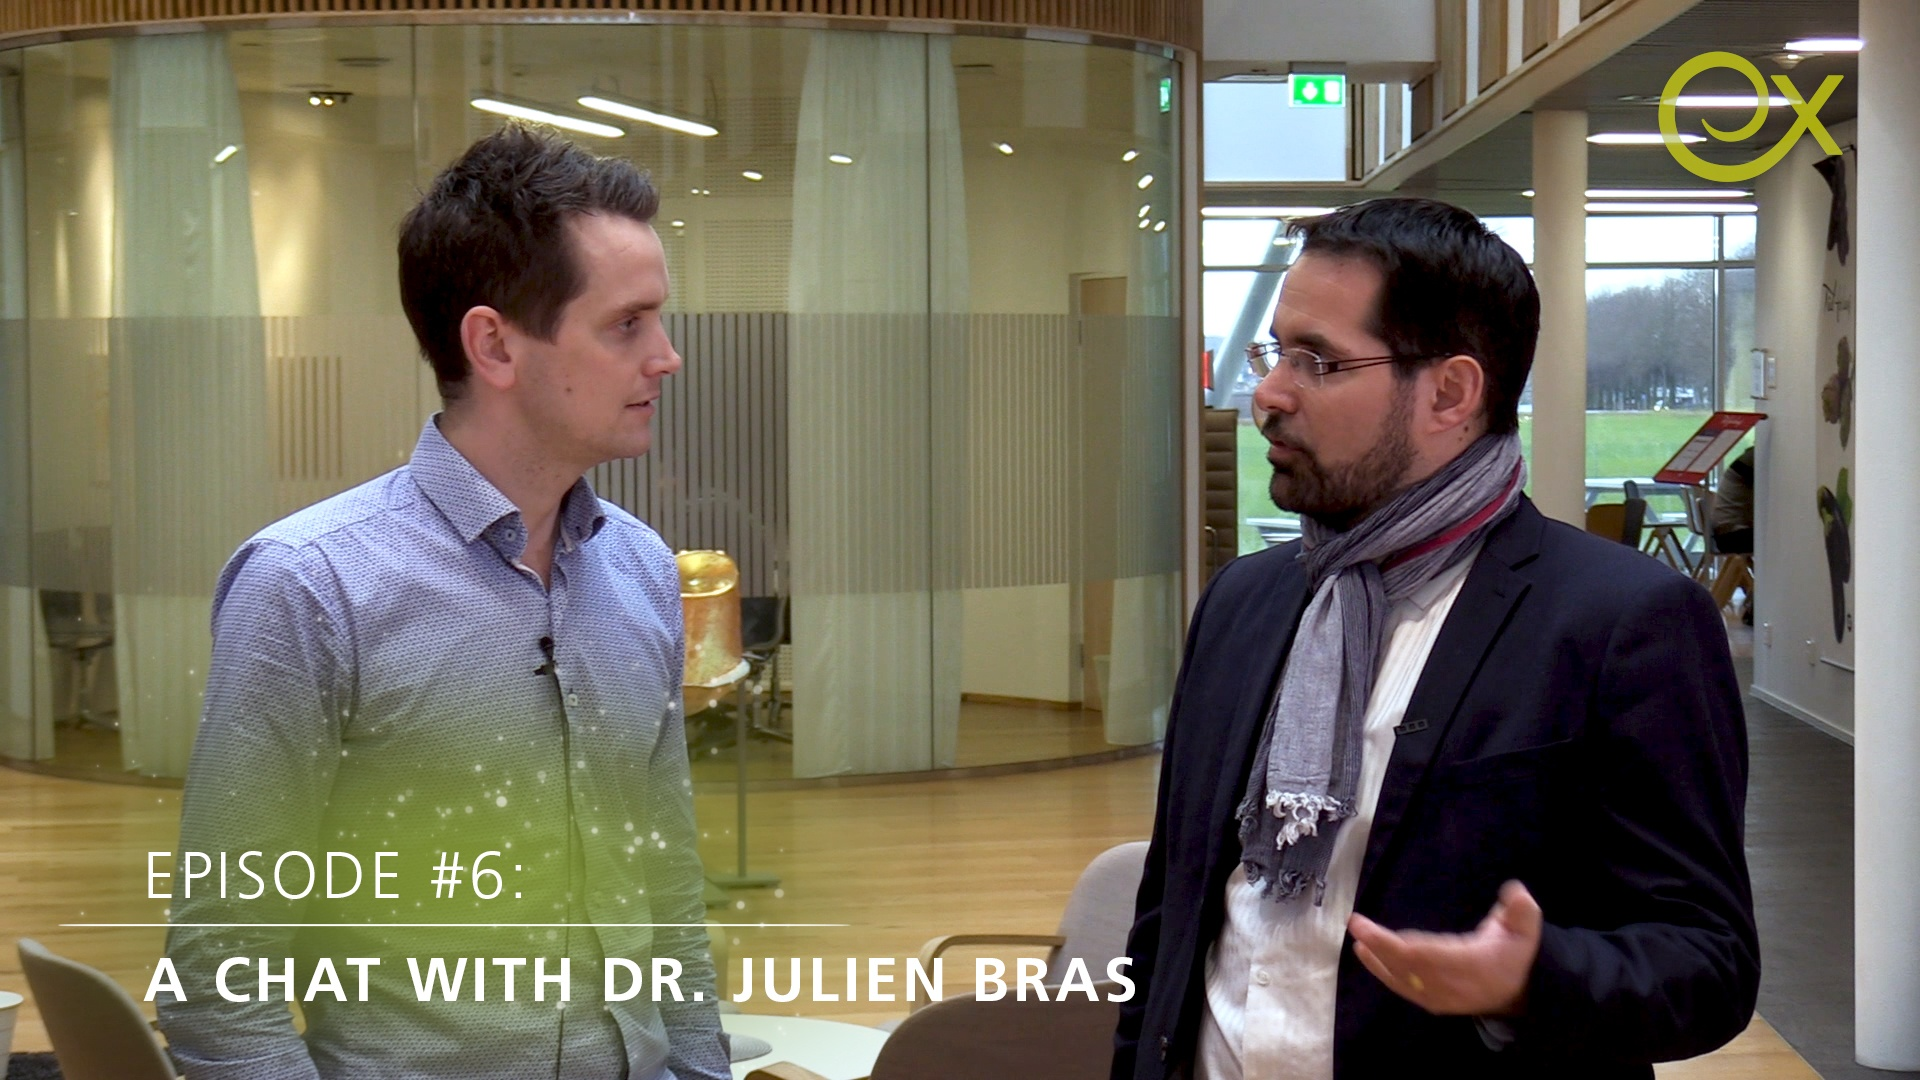 Topic Tuesday: A talk with one of the pioneers in nanocellulose and cellulose fibrils